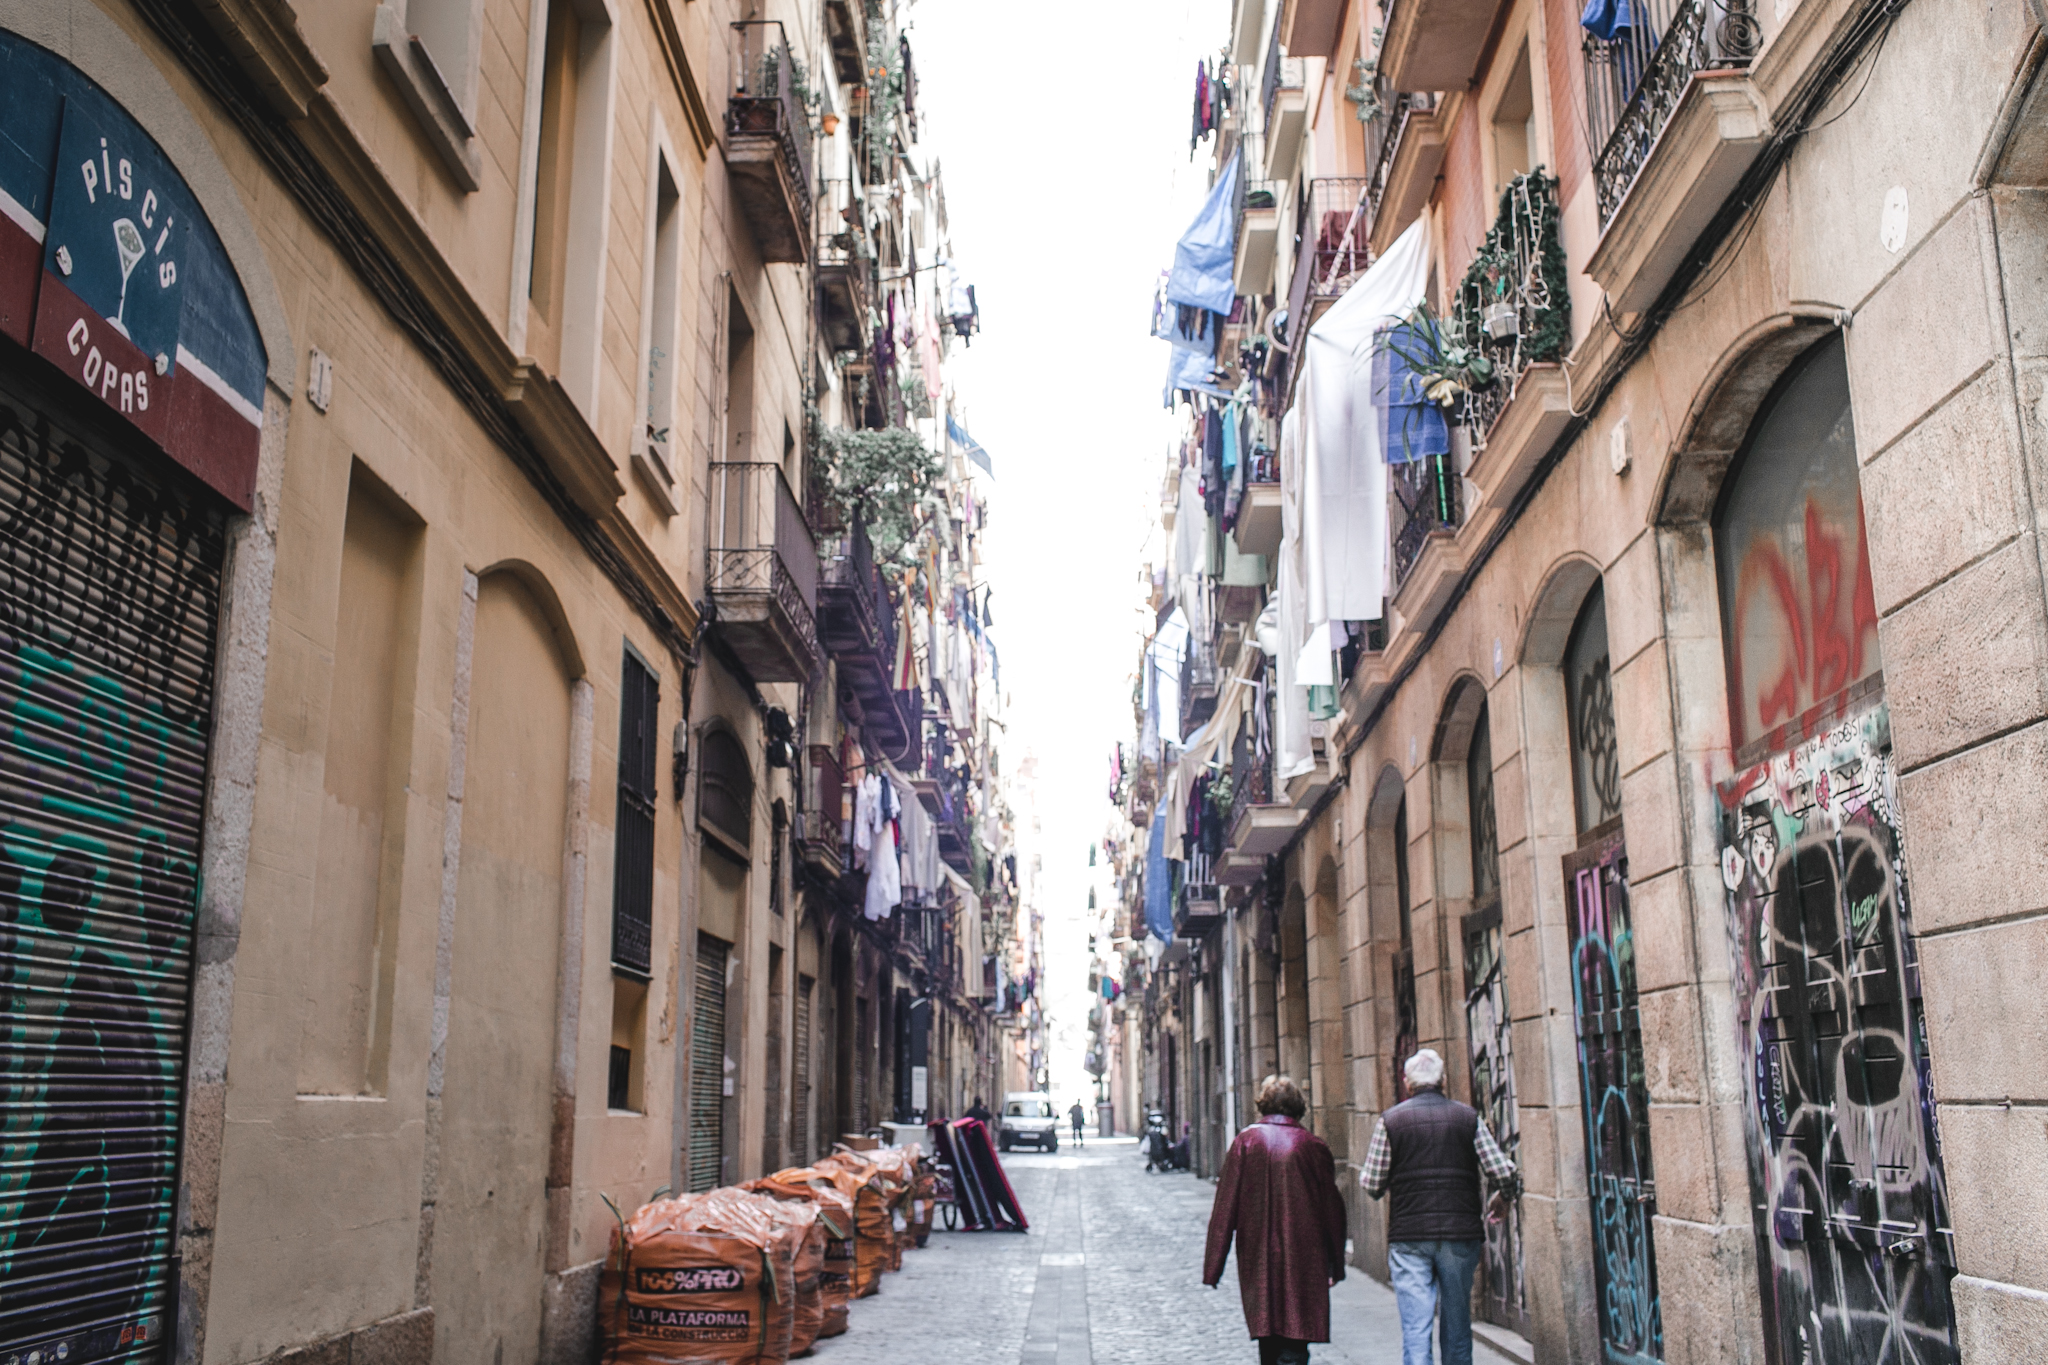 The streets of Raval were doused with graffiti. Laundry hung from every balcony. And typically, these alleys would be full of skateboarders and young hip artists. One of the reasons why we loved this area was because of the lack of tourists.